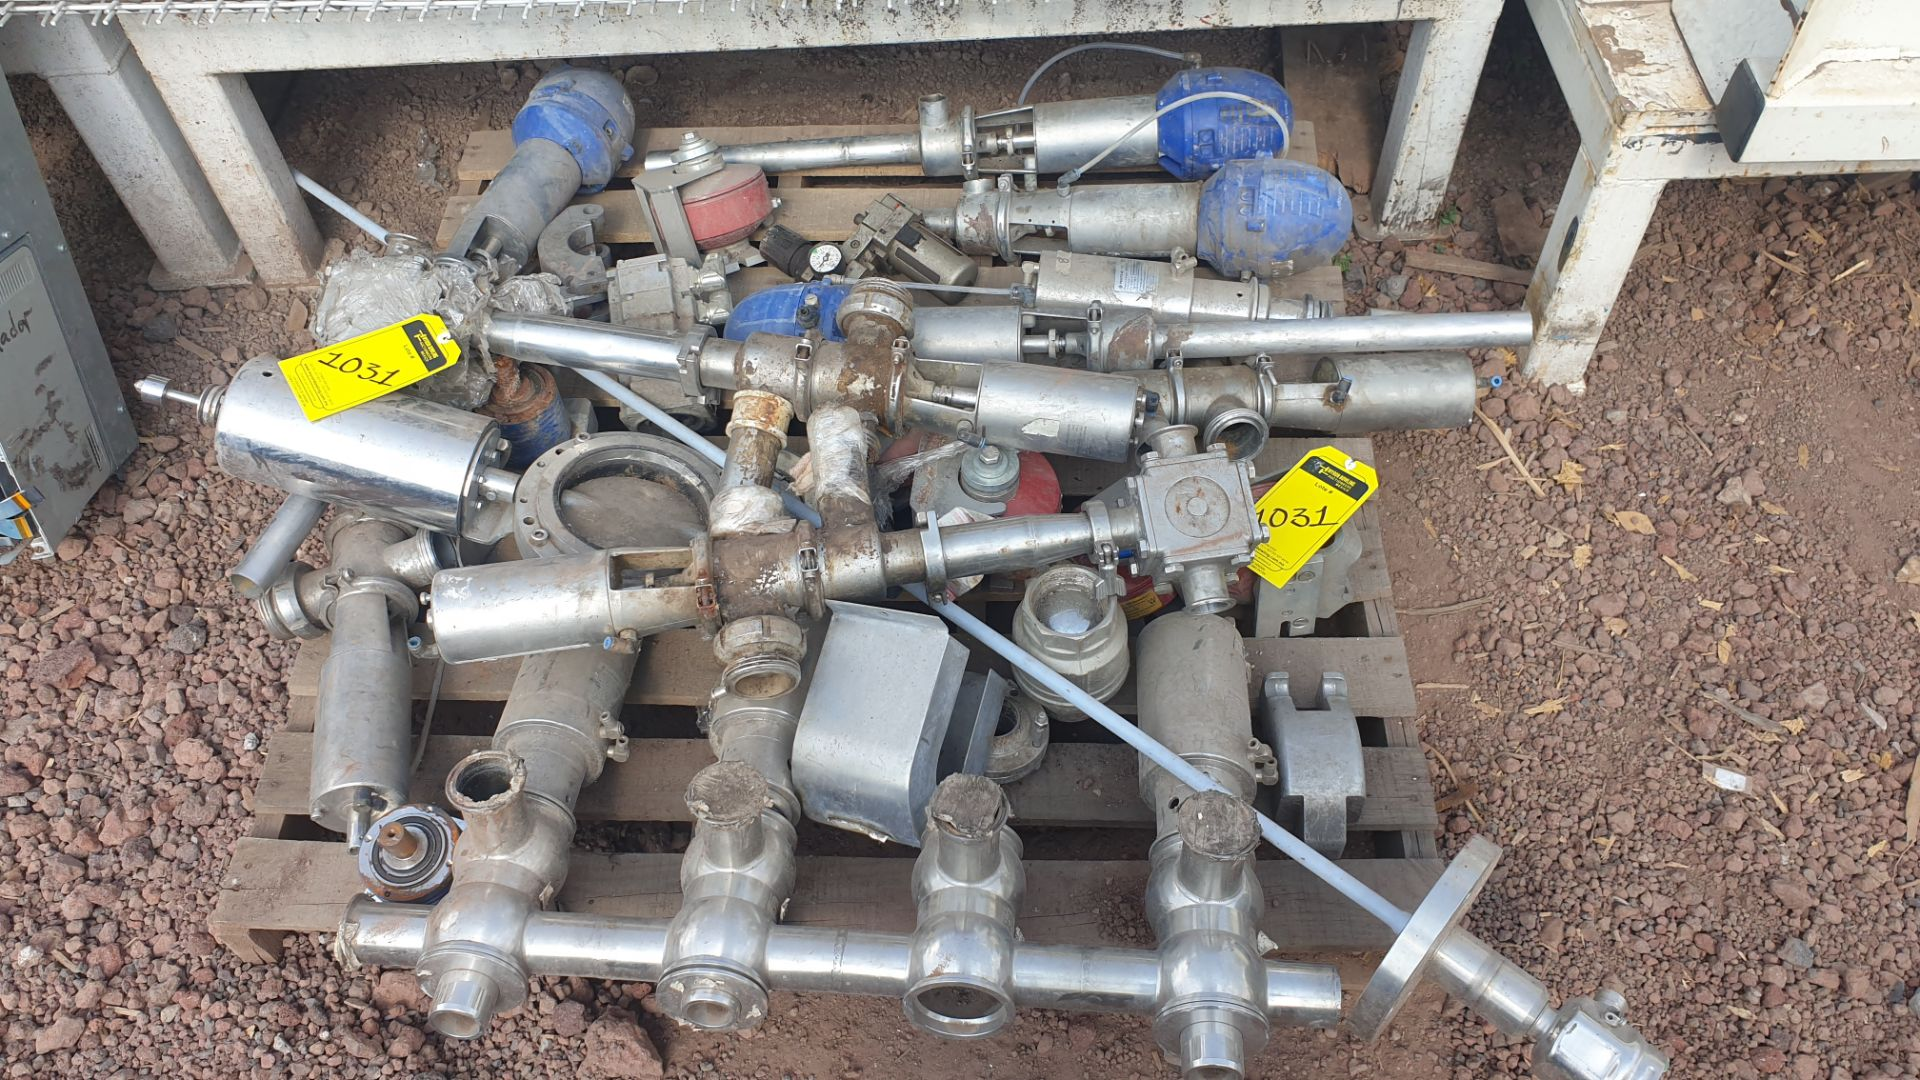 Lot of spare parts, valves, volumetric scales. Please inspect - Image 2 of 8